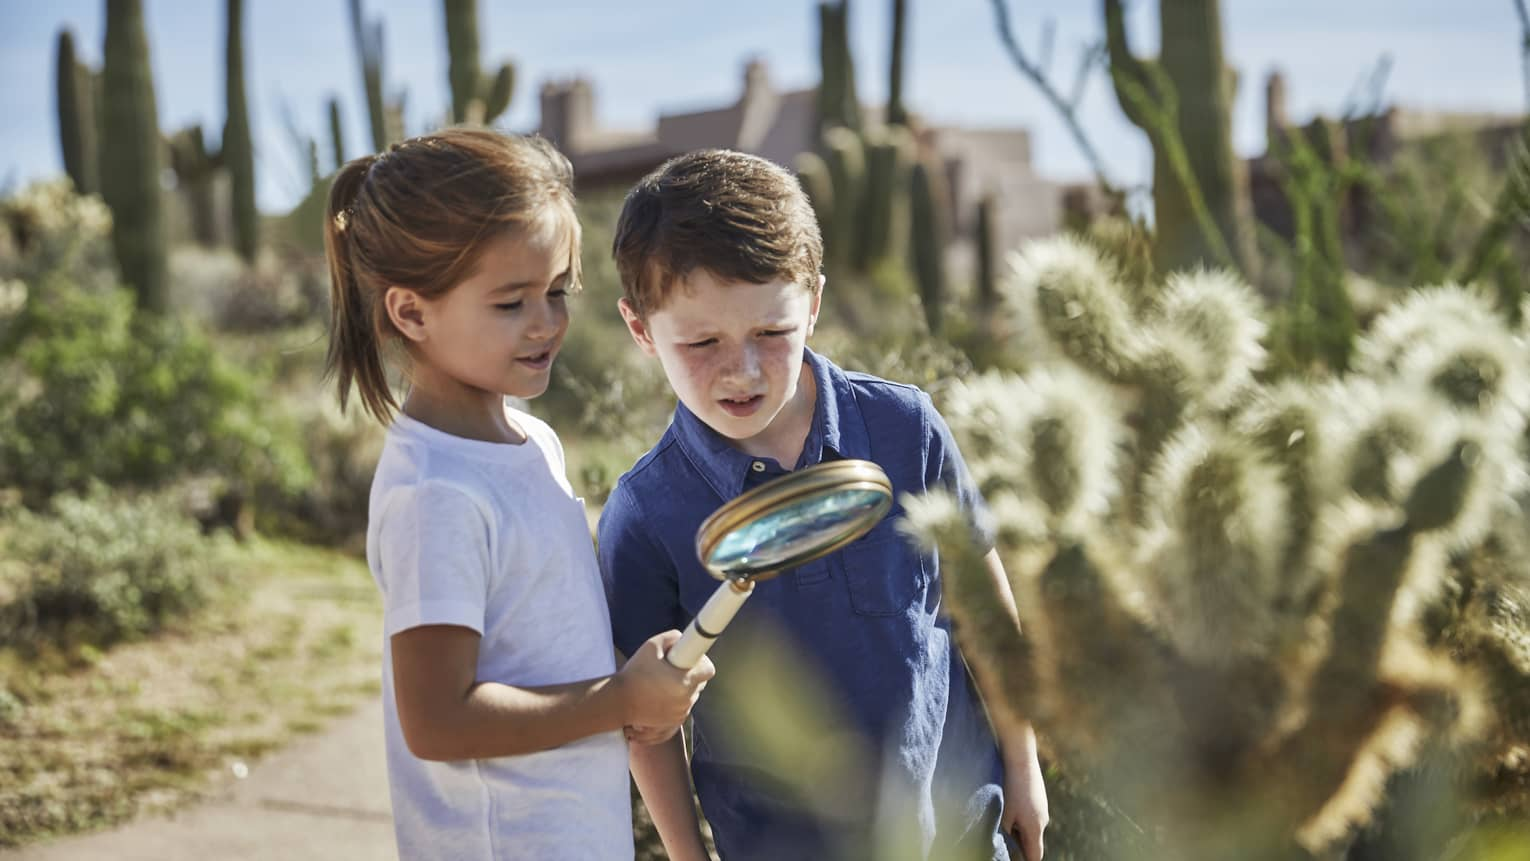 A young boy and girl inspect something near a cactus under a large magnifying glass, with desert landscape surrounding them.